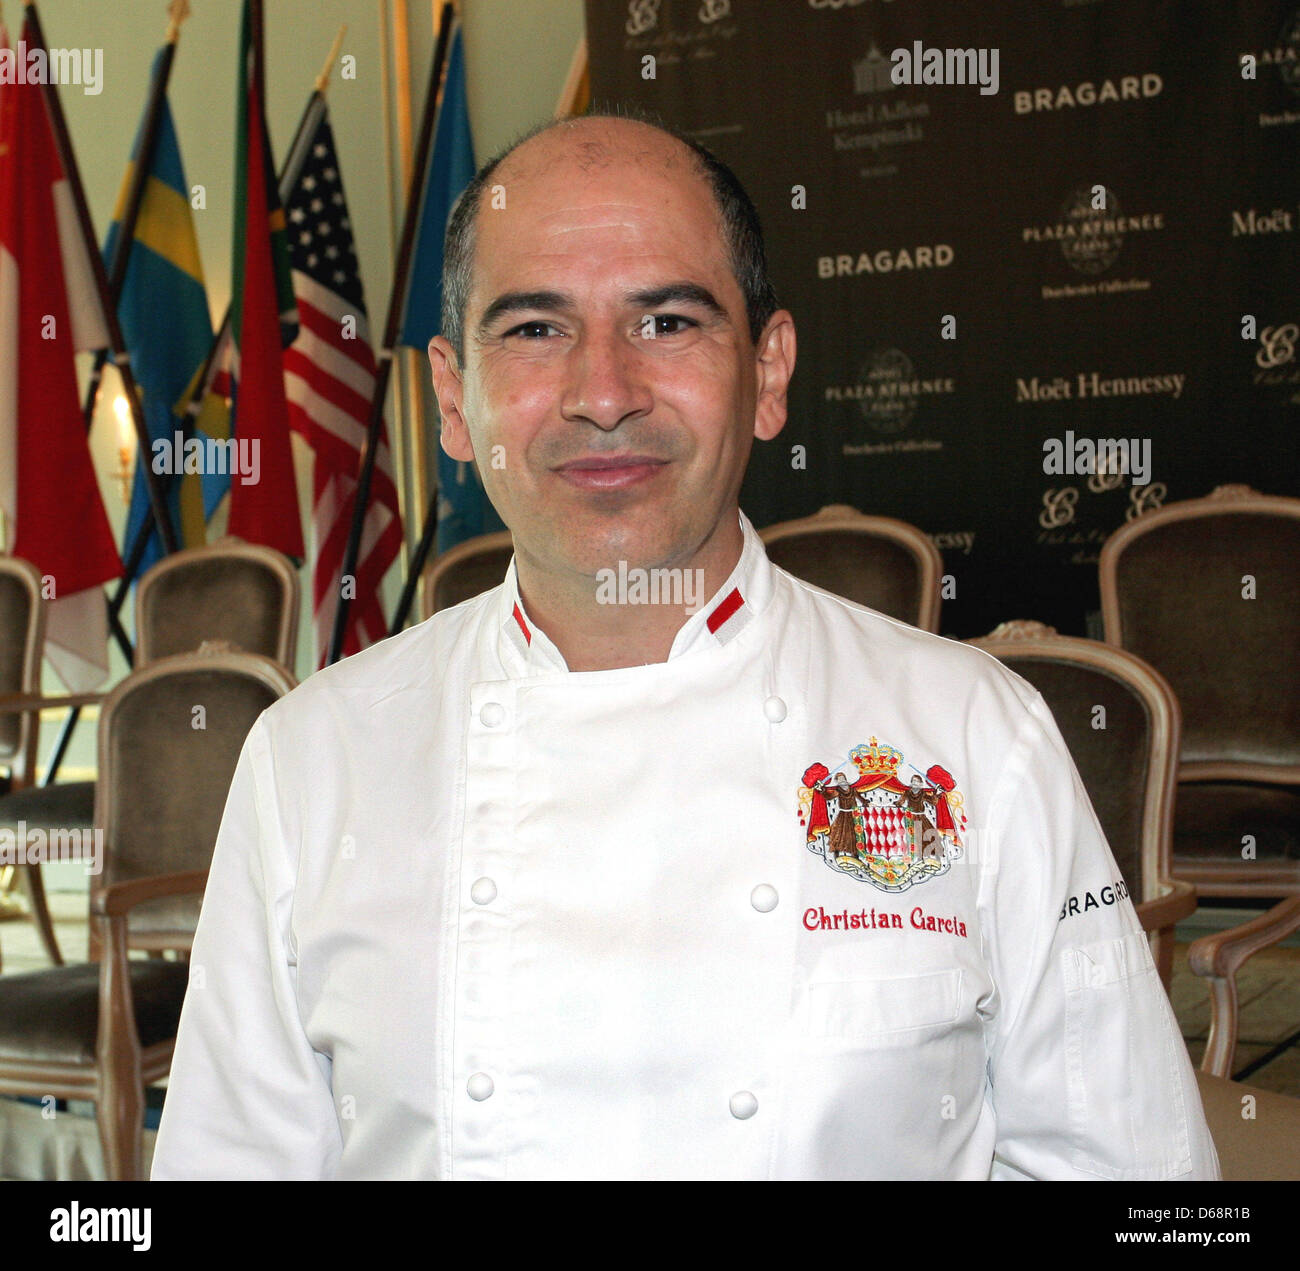 Monegasque top chef Christian Garcia poses in Hotel Adlon during the meeting of the 'Club des Chefs des Chefs' - Stock Image